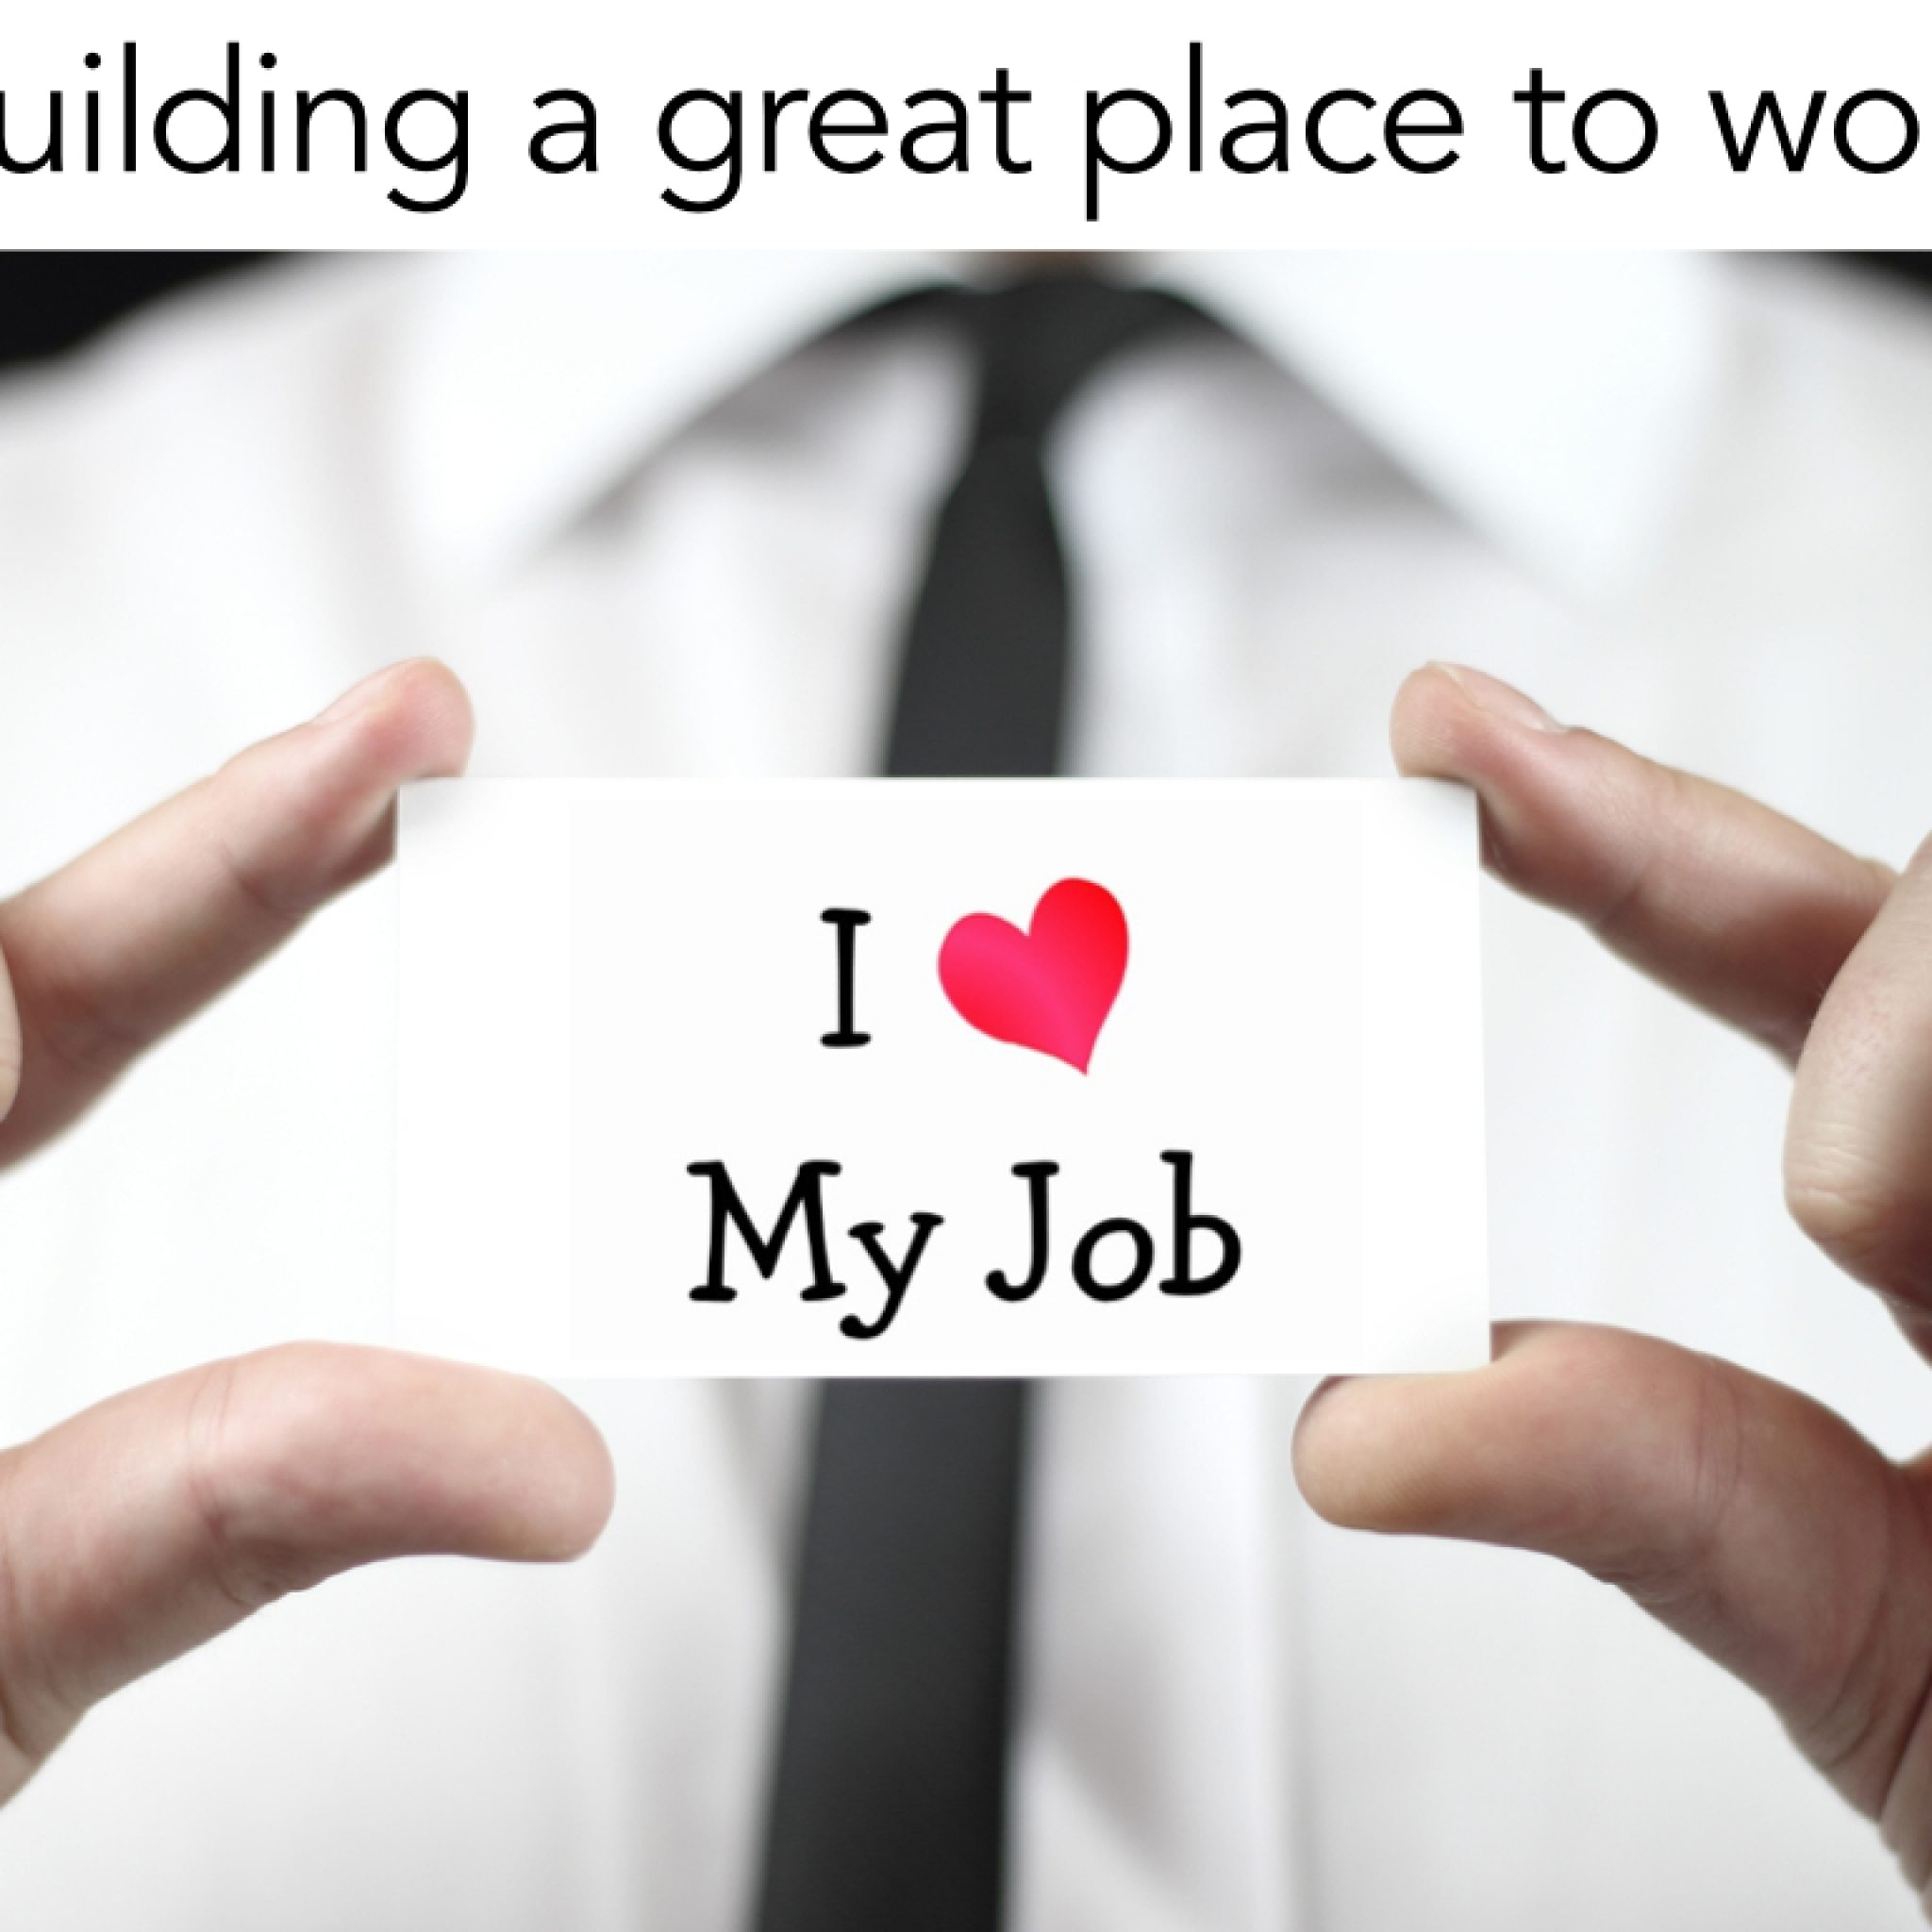 building a great place to work